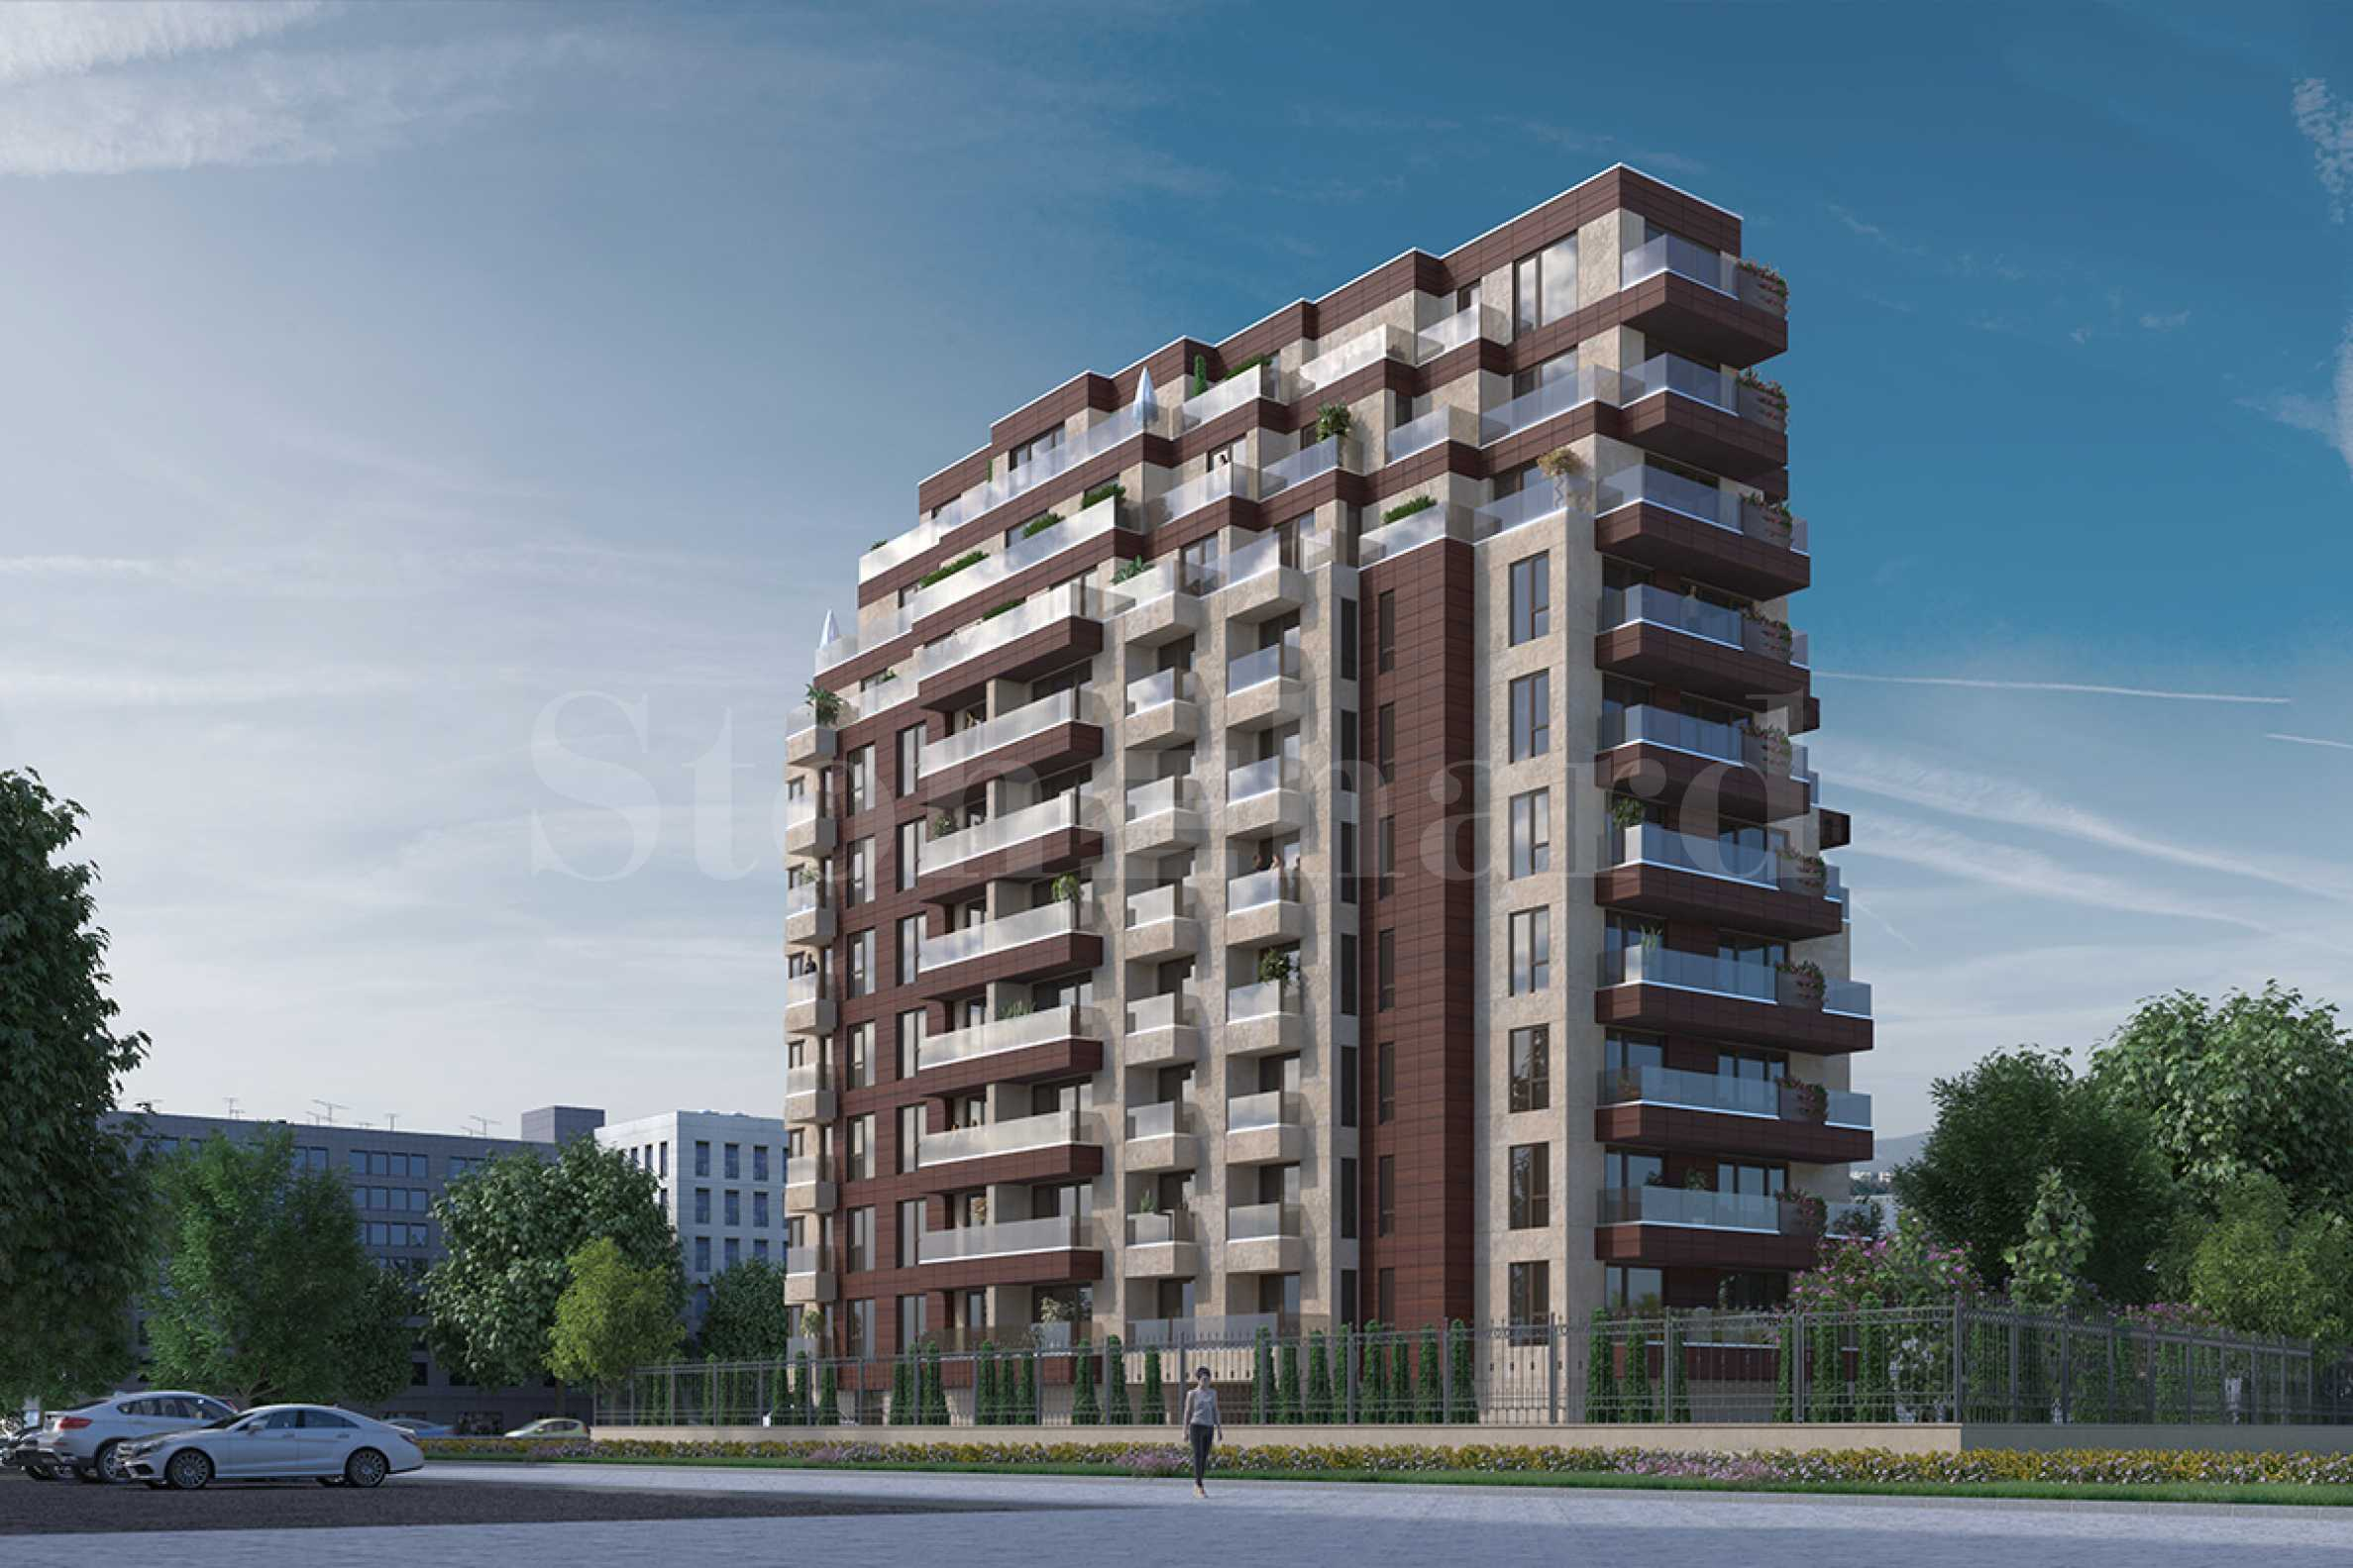 New apartments in Mladost district near metro station and amenities1 - Stonehard